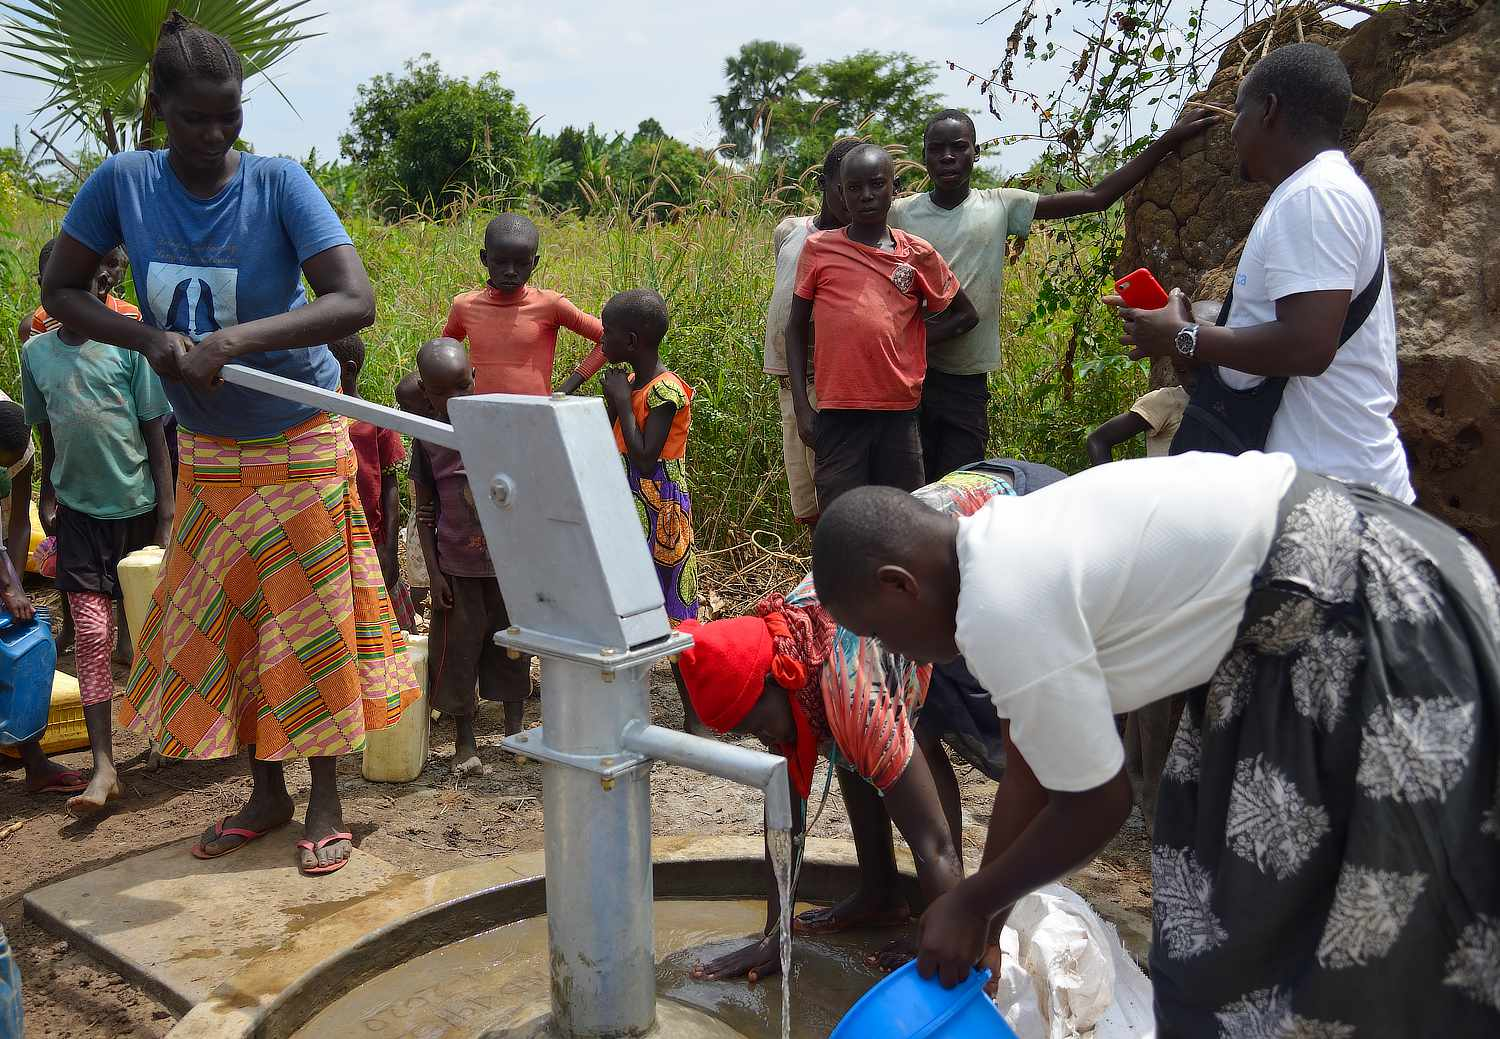 A young lady is pumping the well